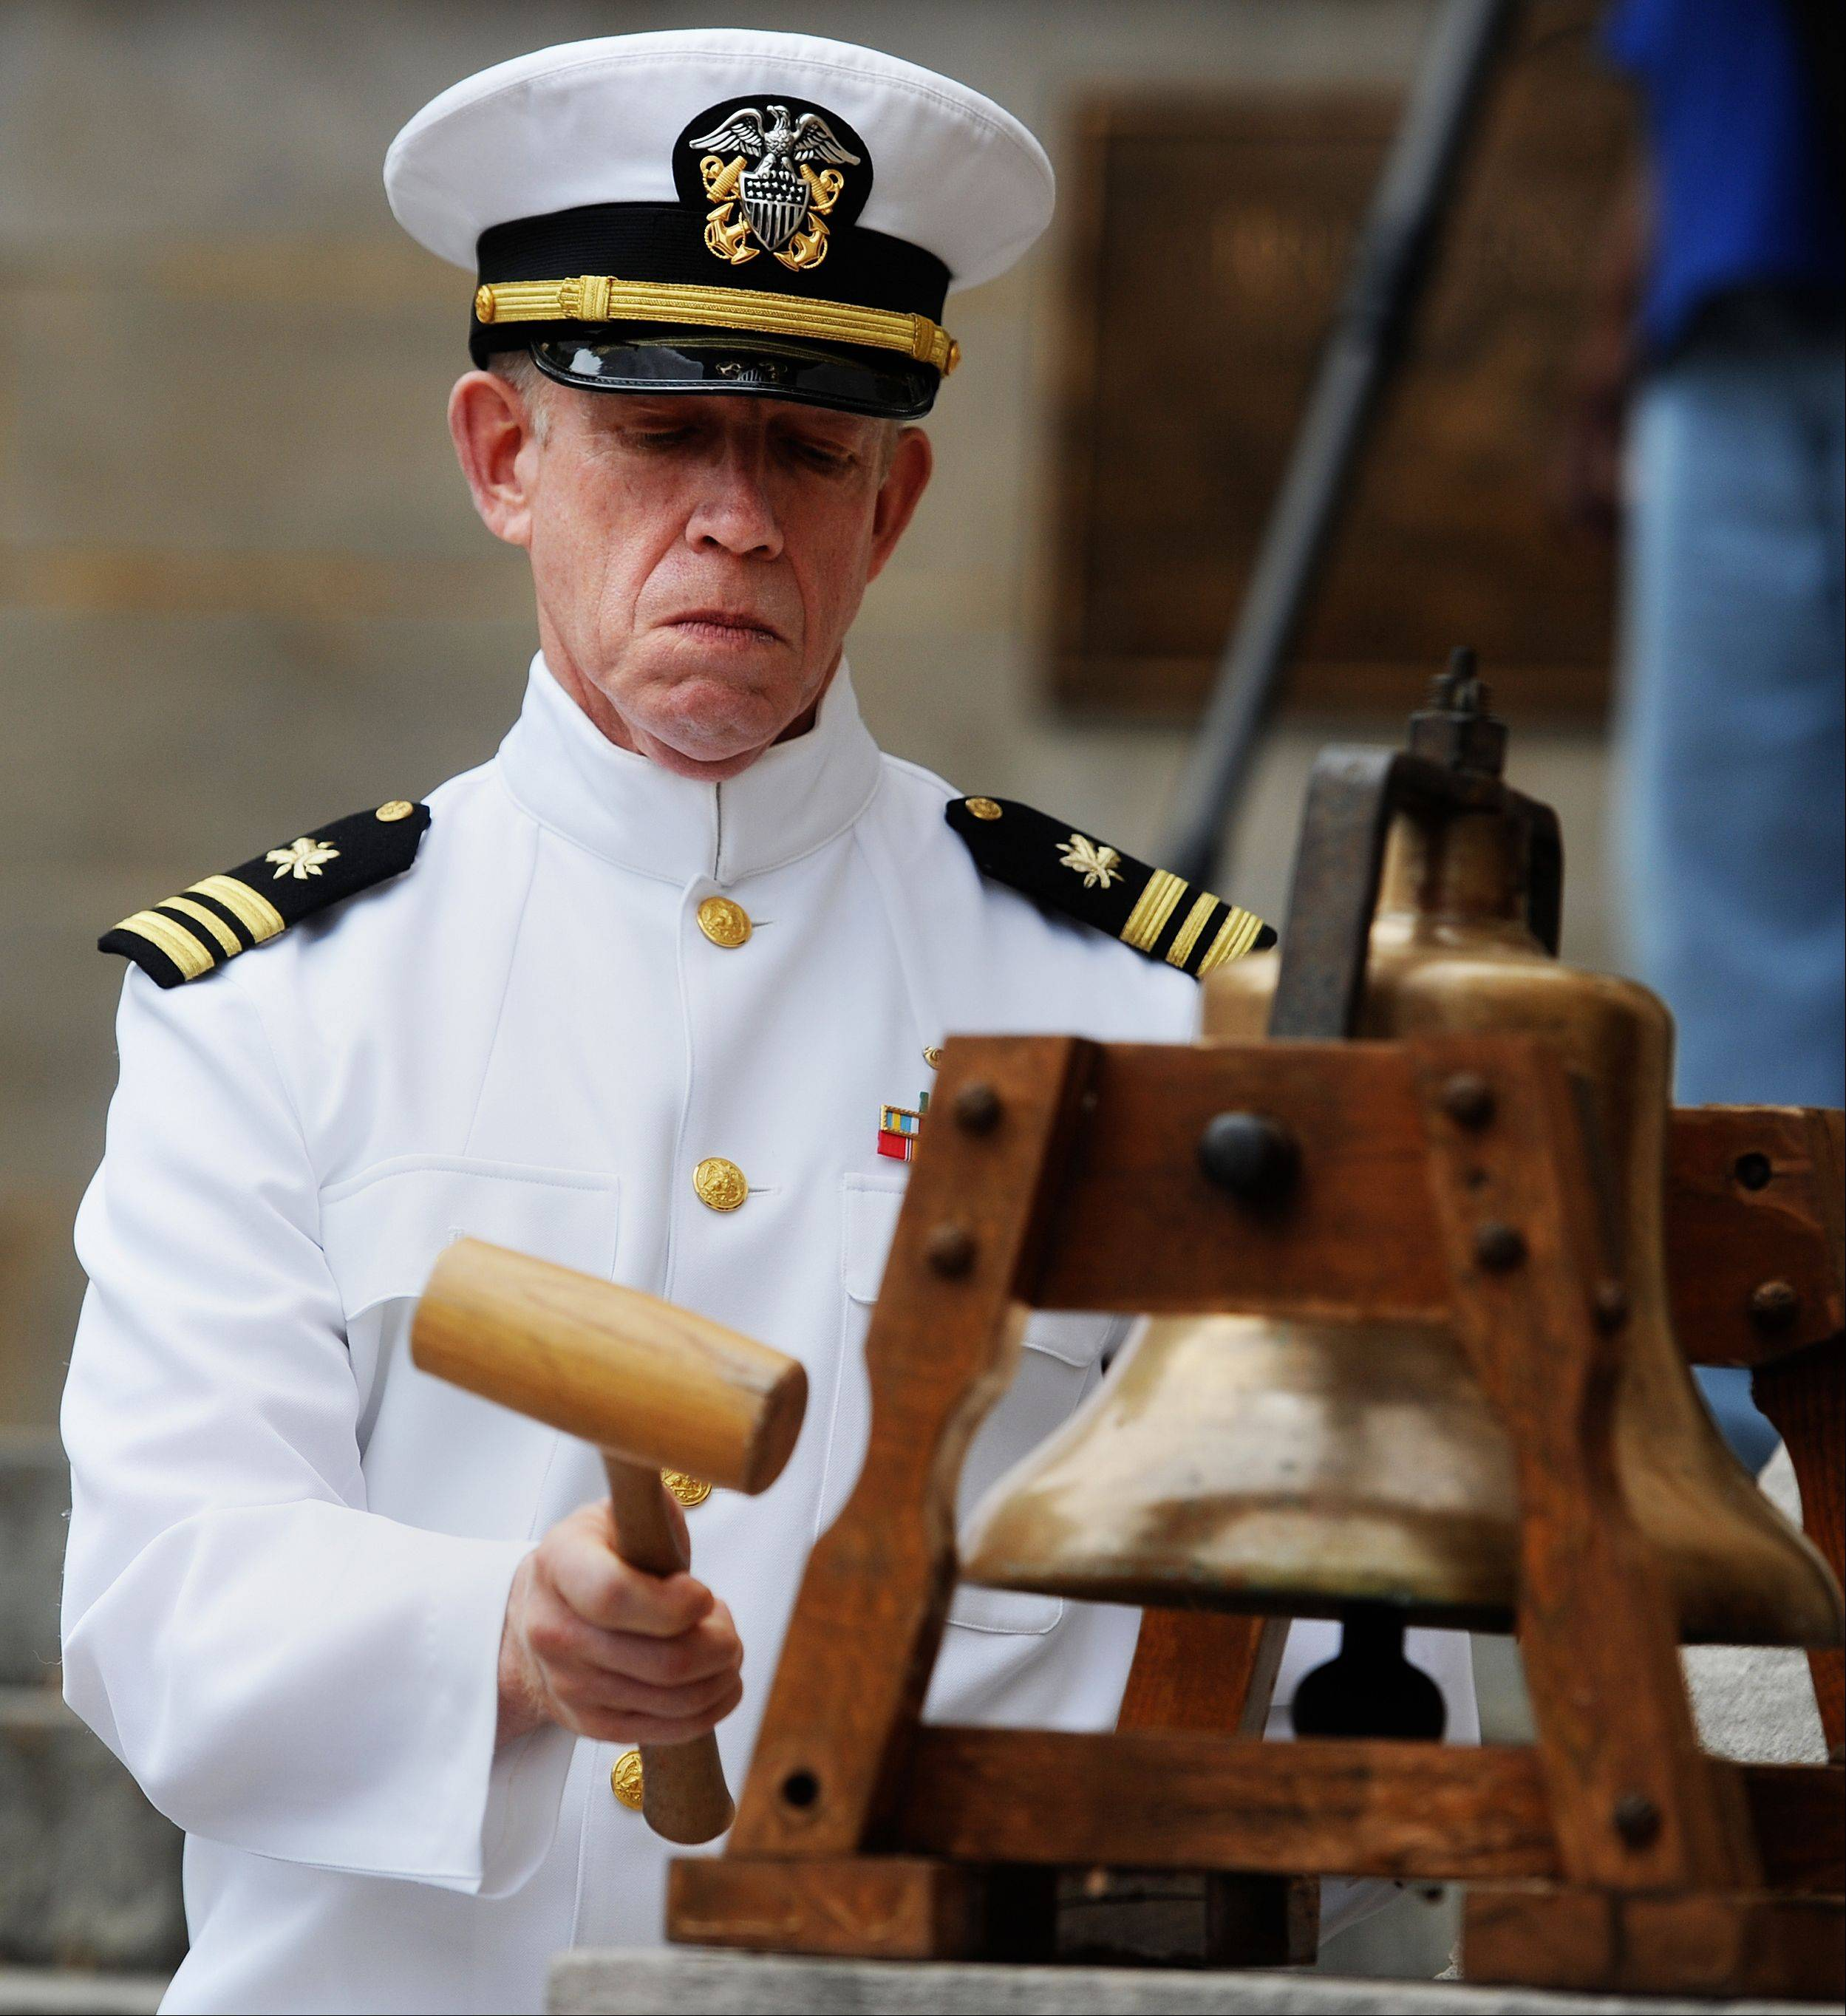 U.S. Navy veteran Paul Webb strikes the bell throughout the Memorial Day service, in Lynchburg, VA., Monday, May 27, 2013.